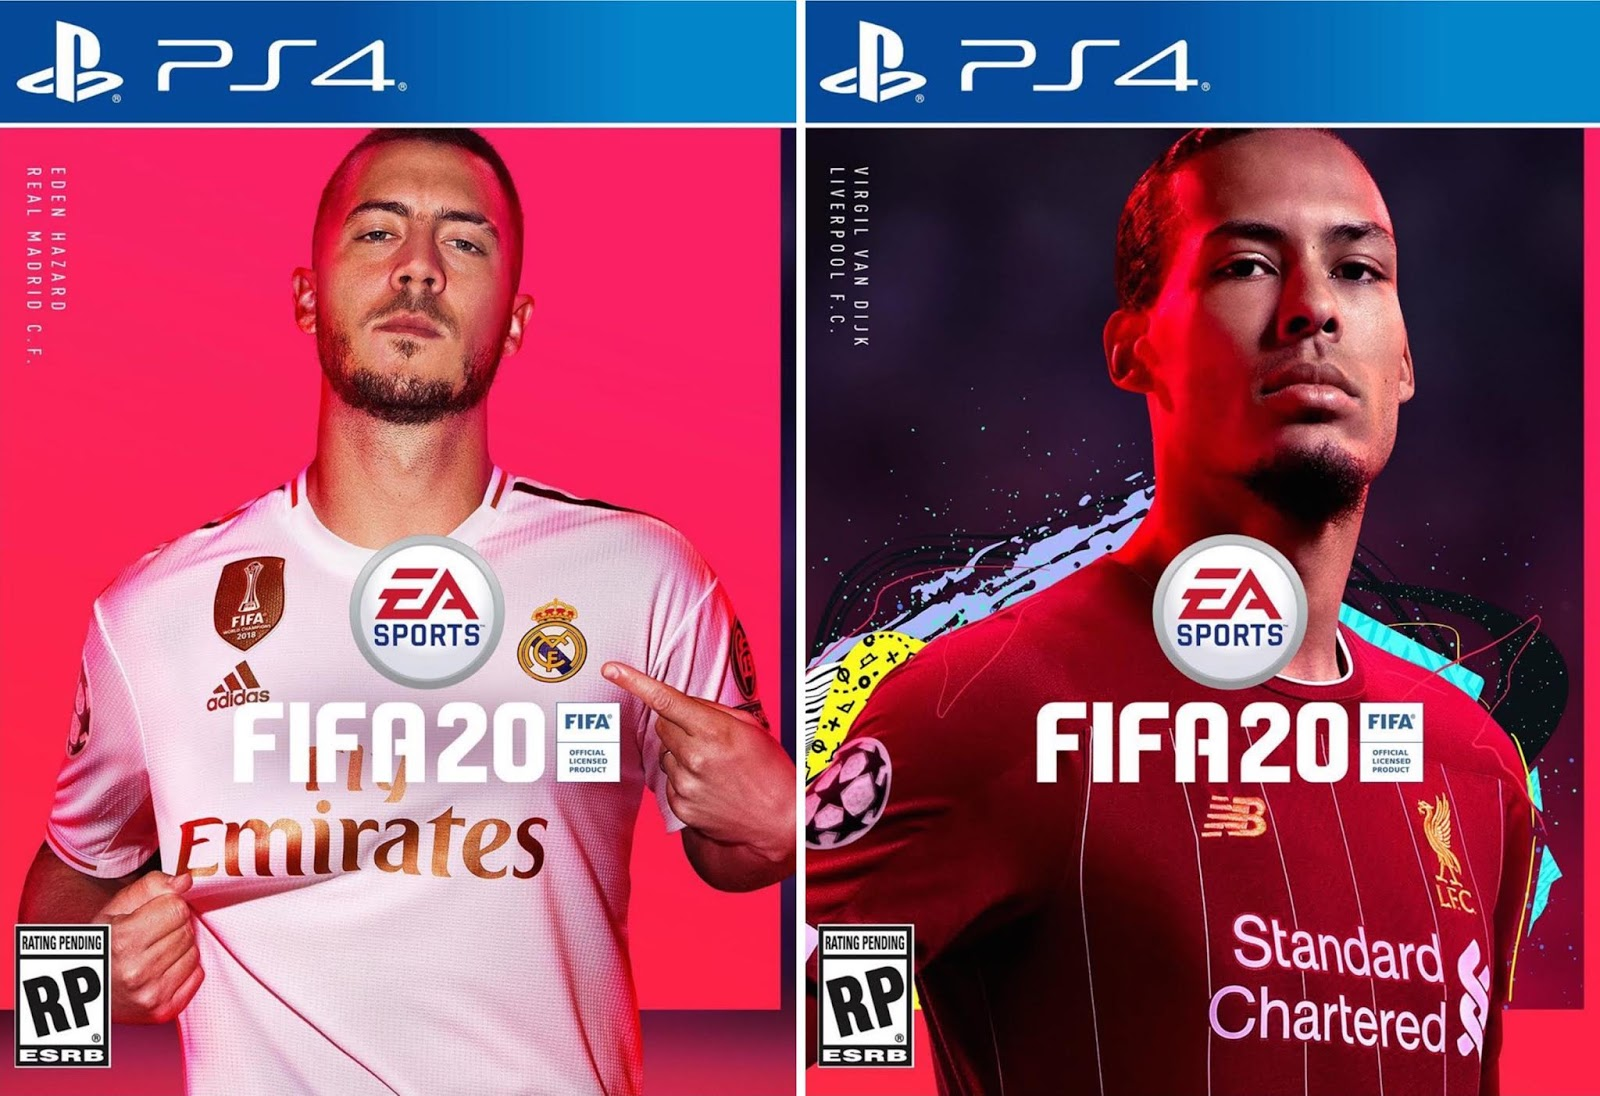 eden hazard, Virgil van, FIFA 20 cover, ea sports breaking news, sports news Nigeria, Nigerian entertainment news blog, SD news blog, abuja bloggers, entertainment news blog, popular abujl news blog, UBA market, best Nigerian side hustles, jagan of instagram